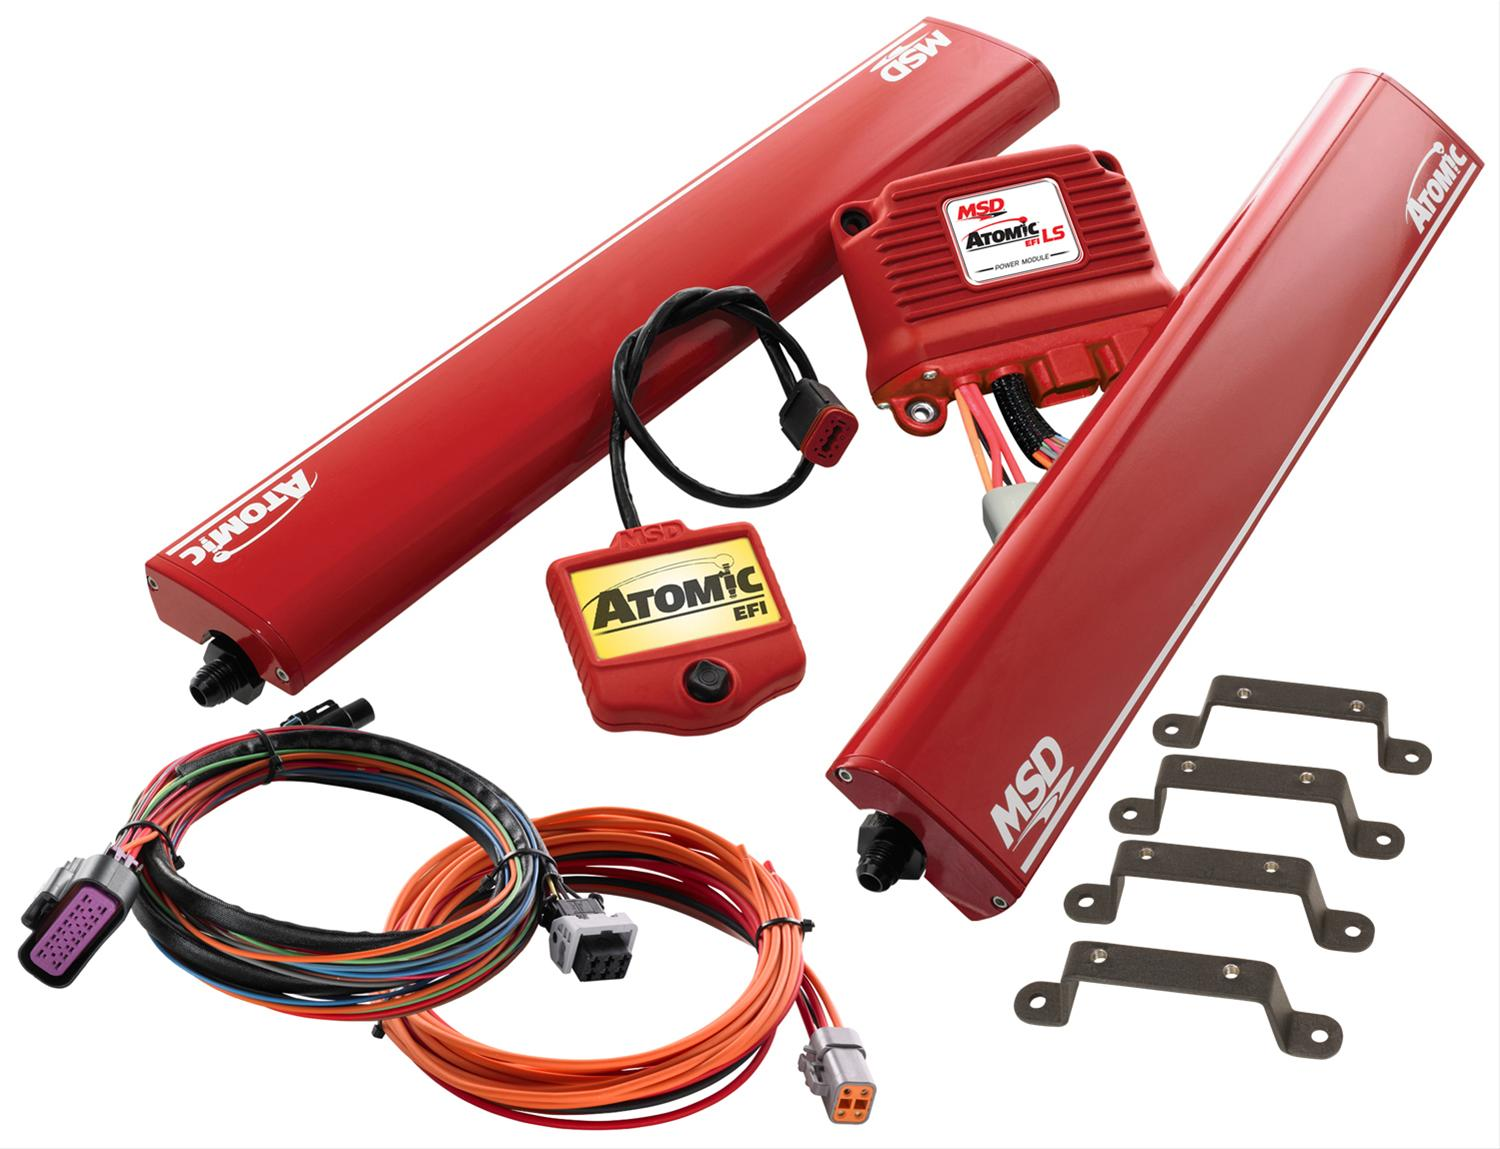 Msd Atomic Ls Efi Fuel Injection Systems 2957 Free Shipping On Engine Computer Wiring Harness Orders Over 99 At Summit Racing